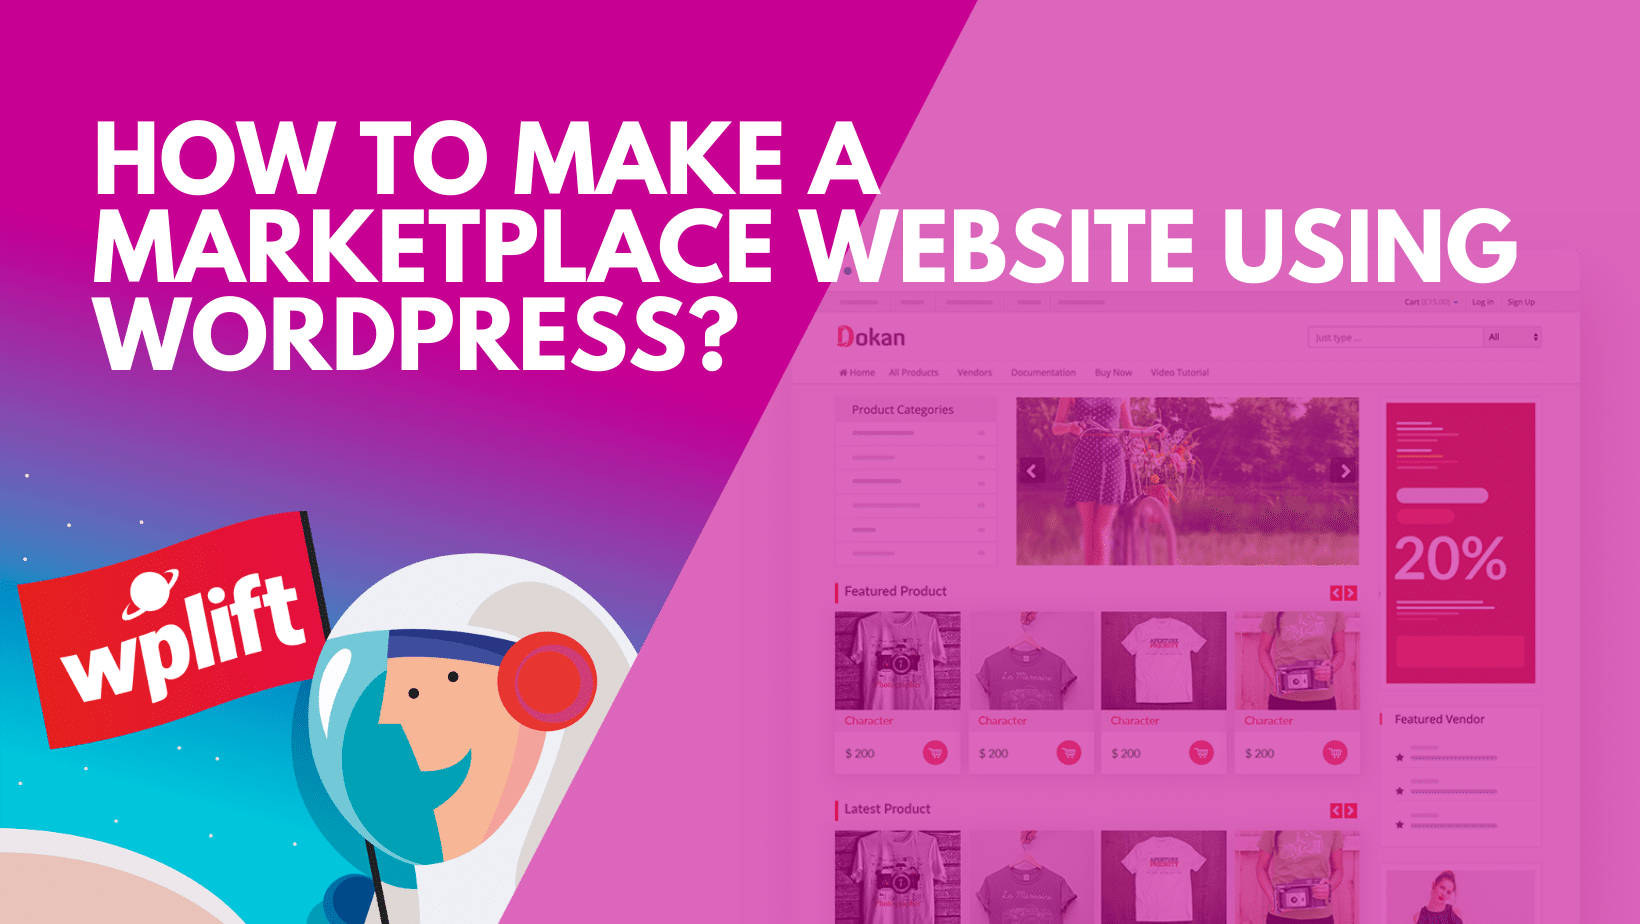 How To Make A Marketplace Website Using WordPress?